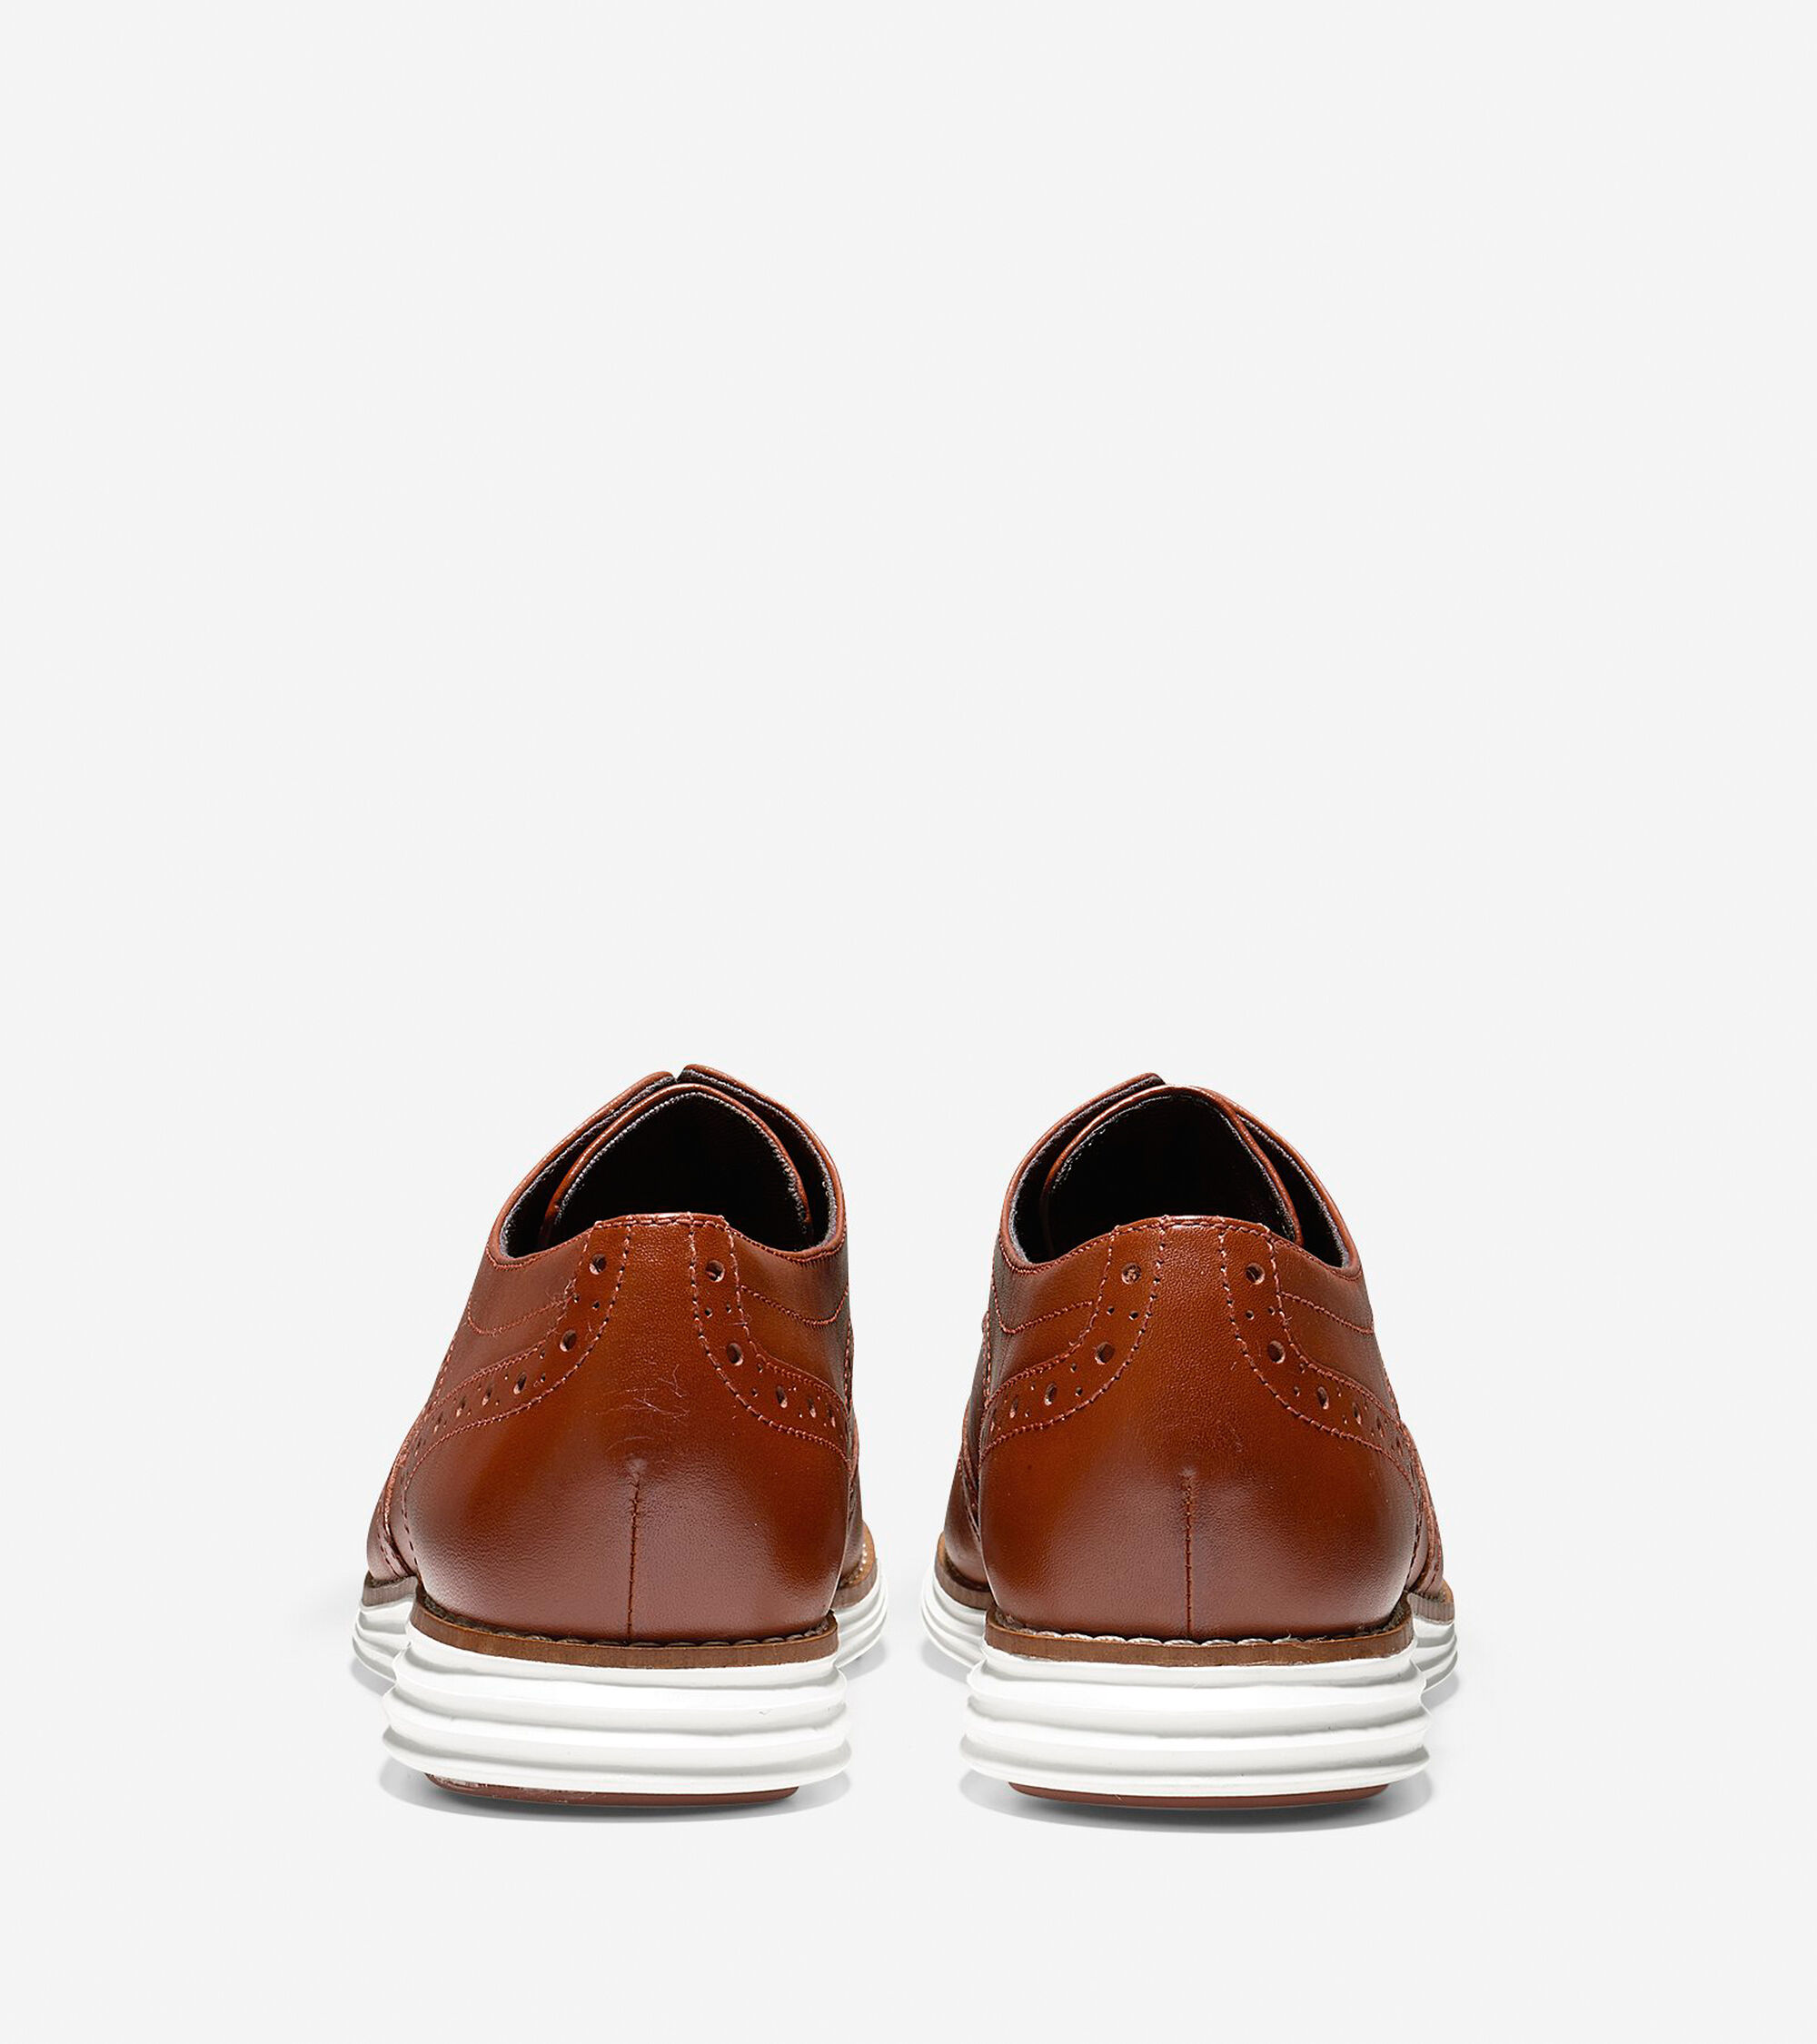 4f7d70724d04 Women s OriginalGrand Wingtip Oxfords in Brandy Brown-White